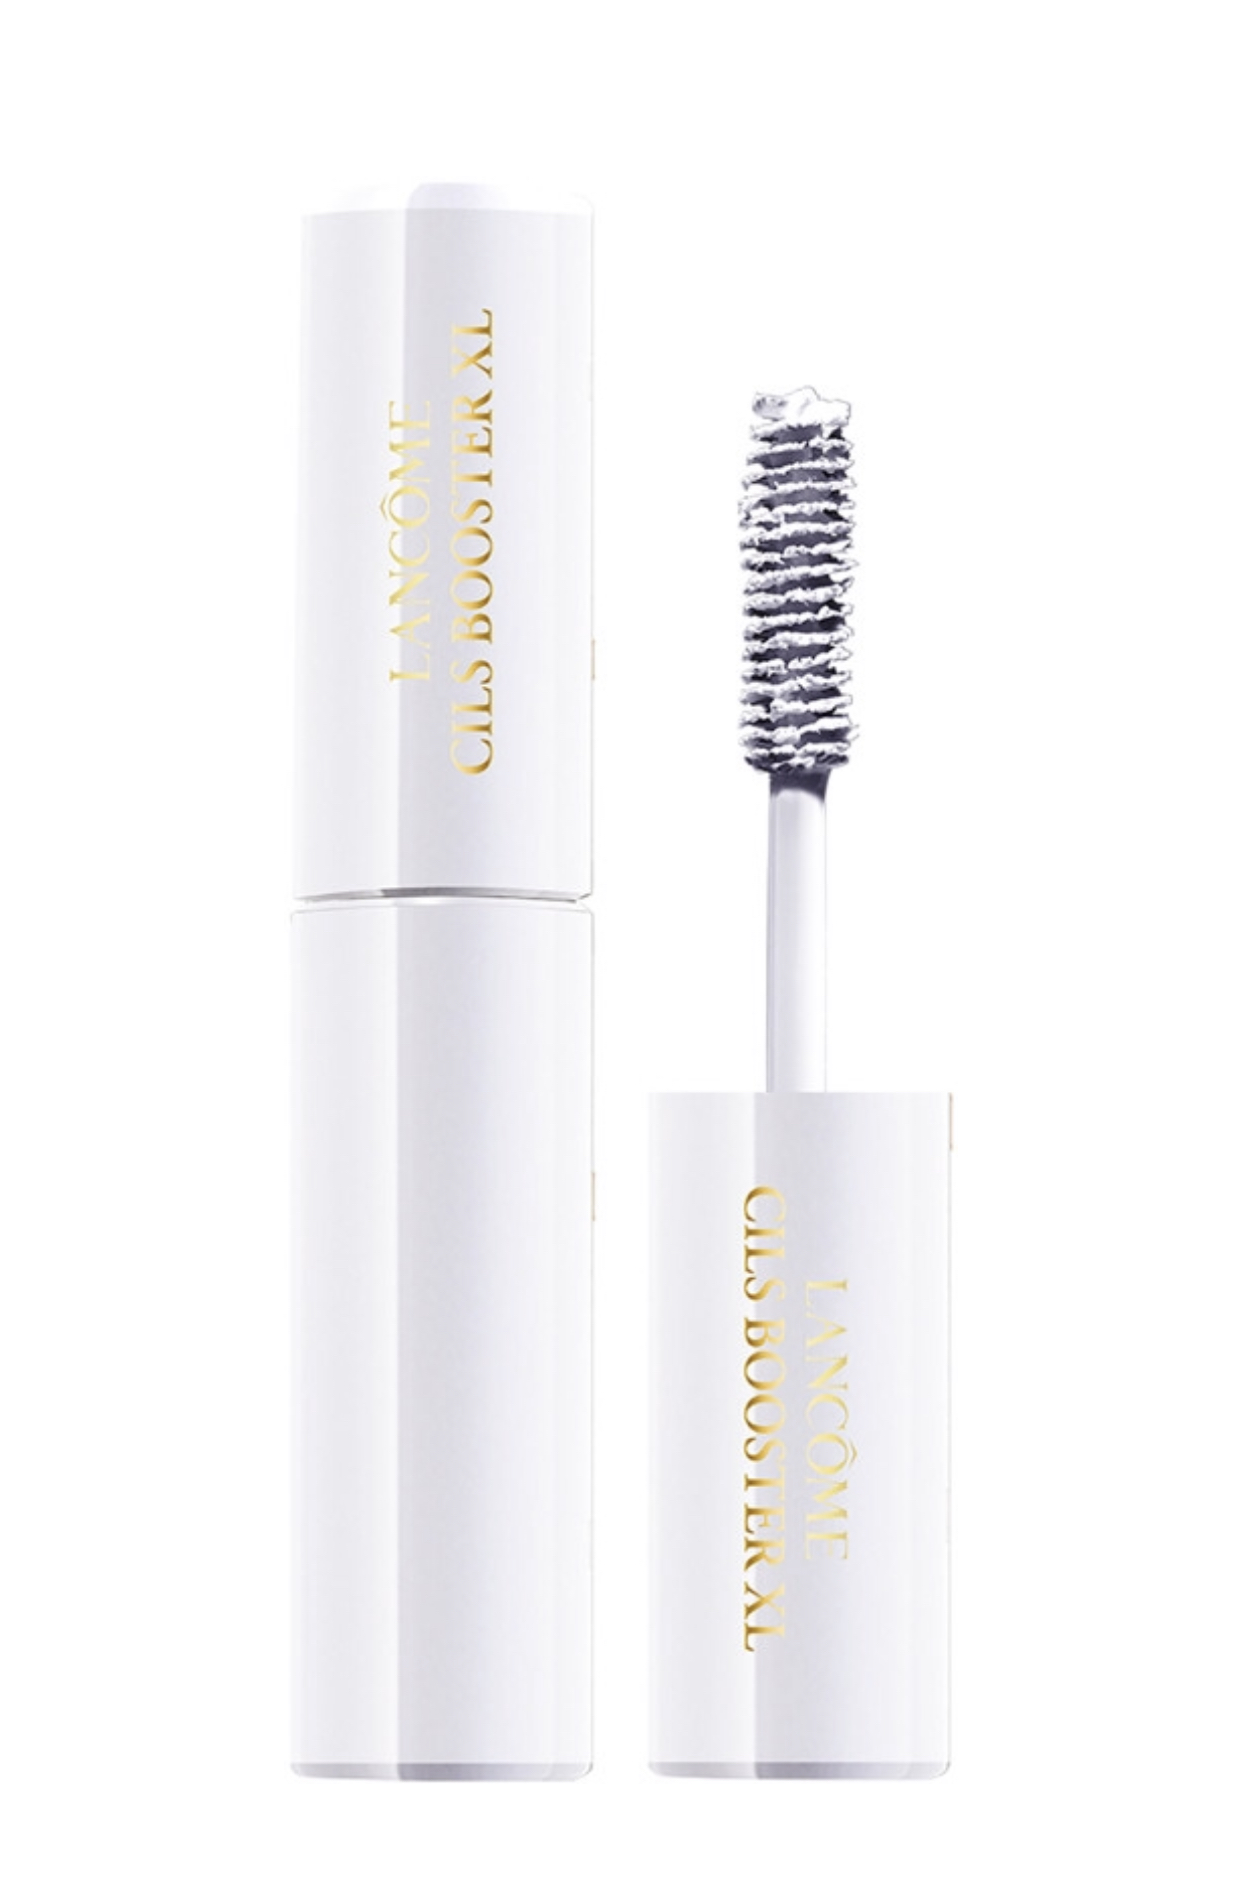 Lancôme Cils Booster Xl Vitamin-Infused Mascara Primer